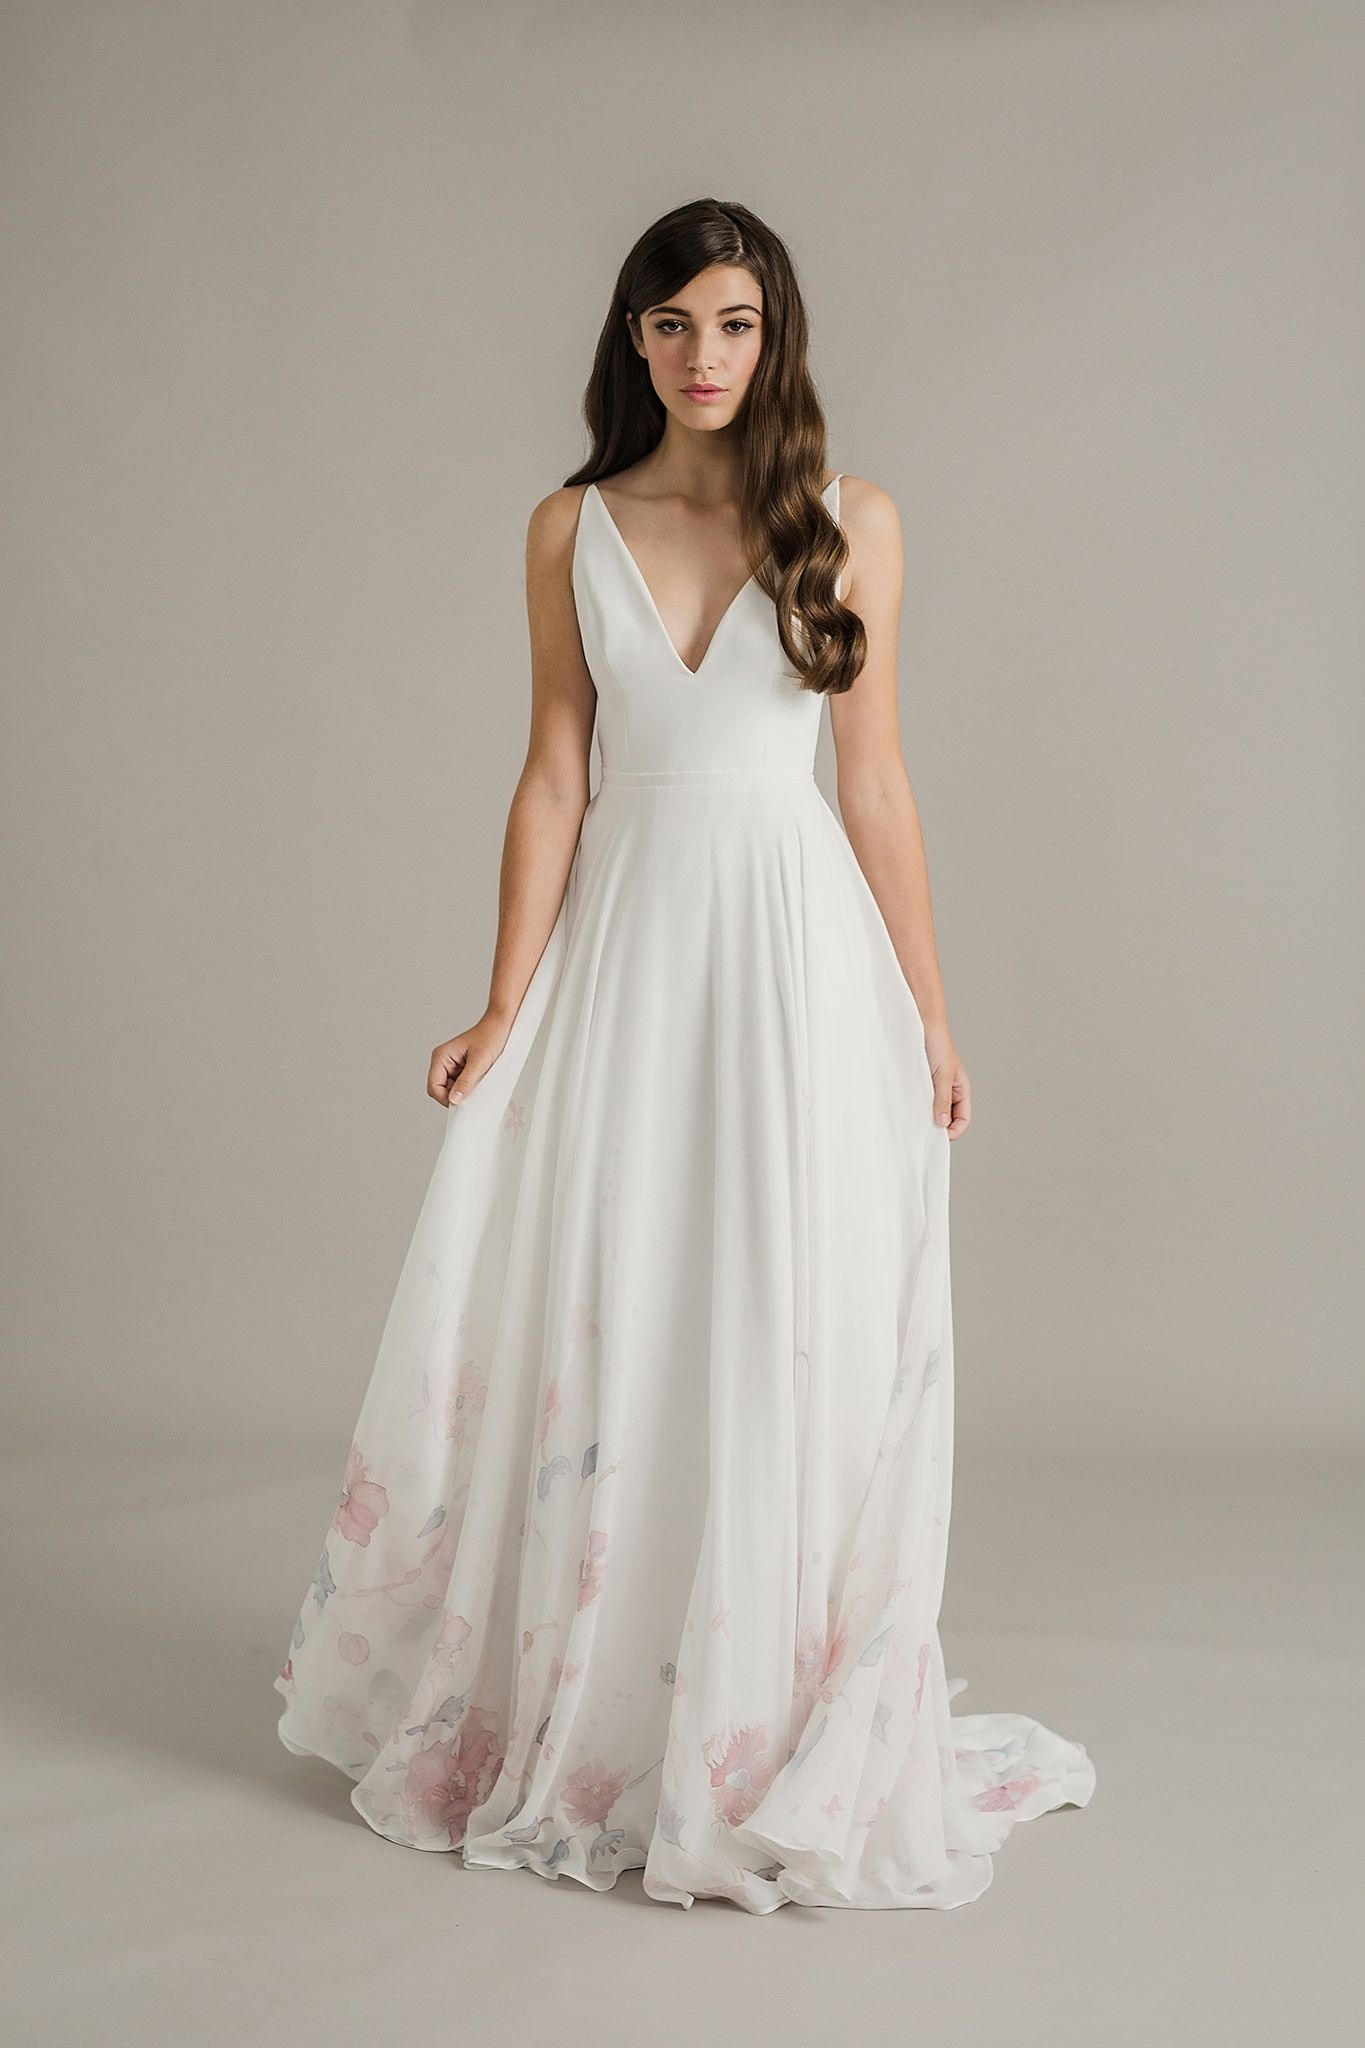 Flower print wedding gown  Sally Eagle Wedding Dress Collection  Dusk  The oujays